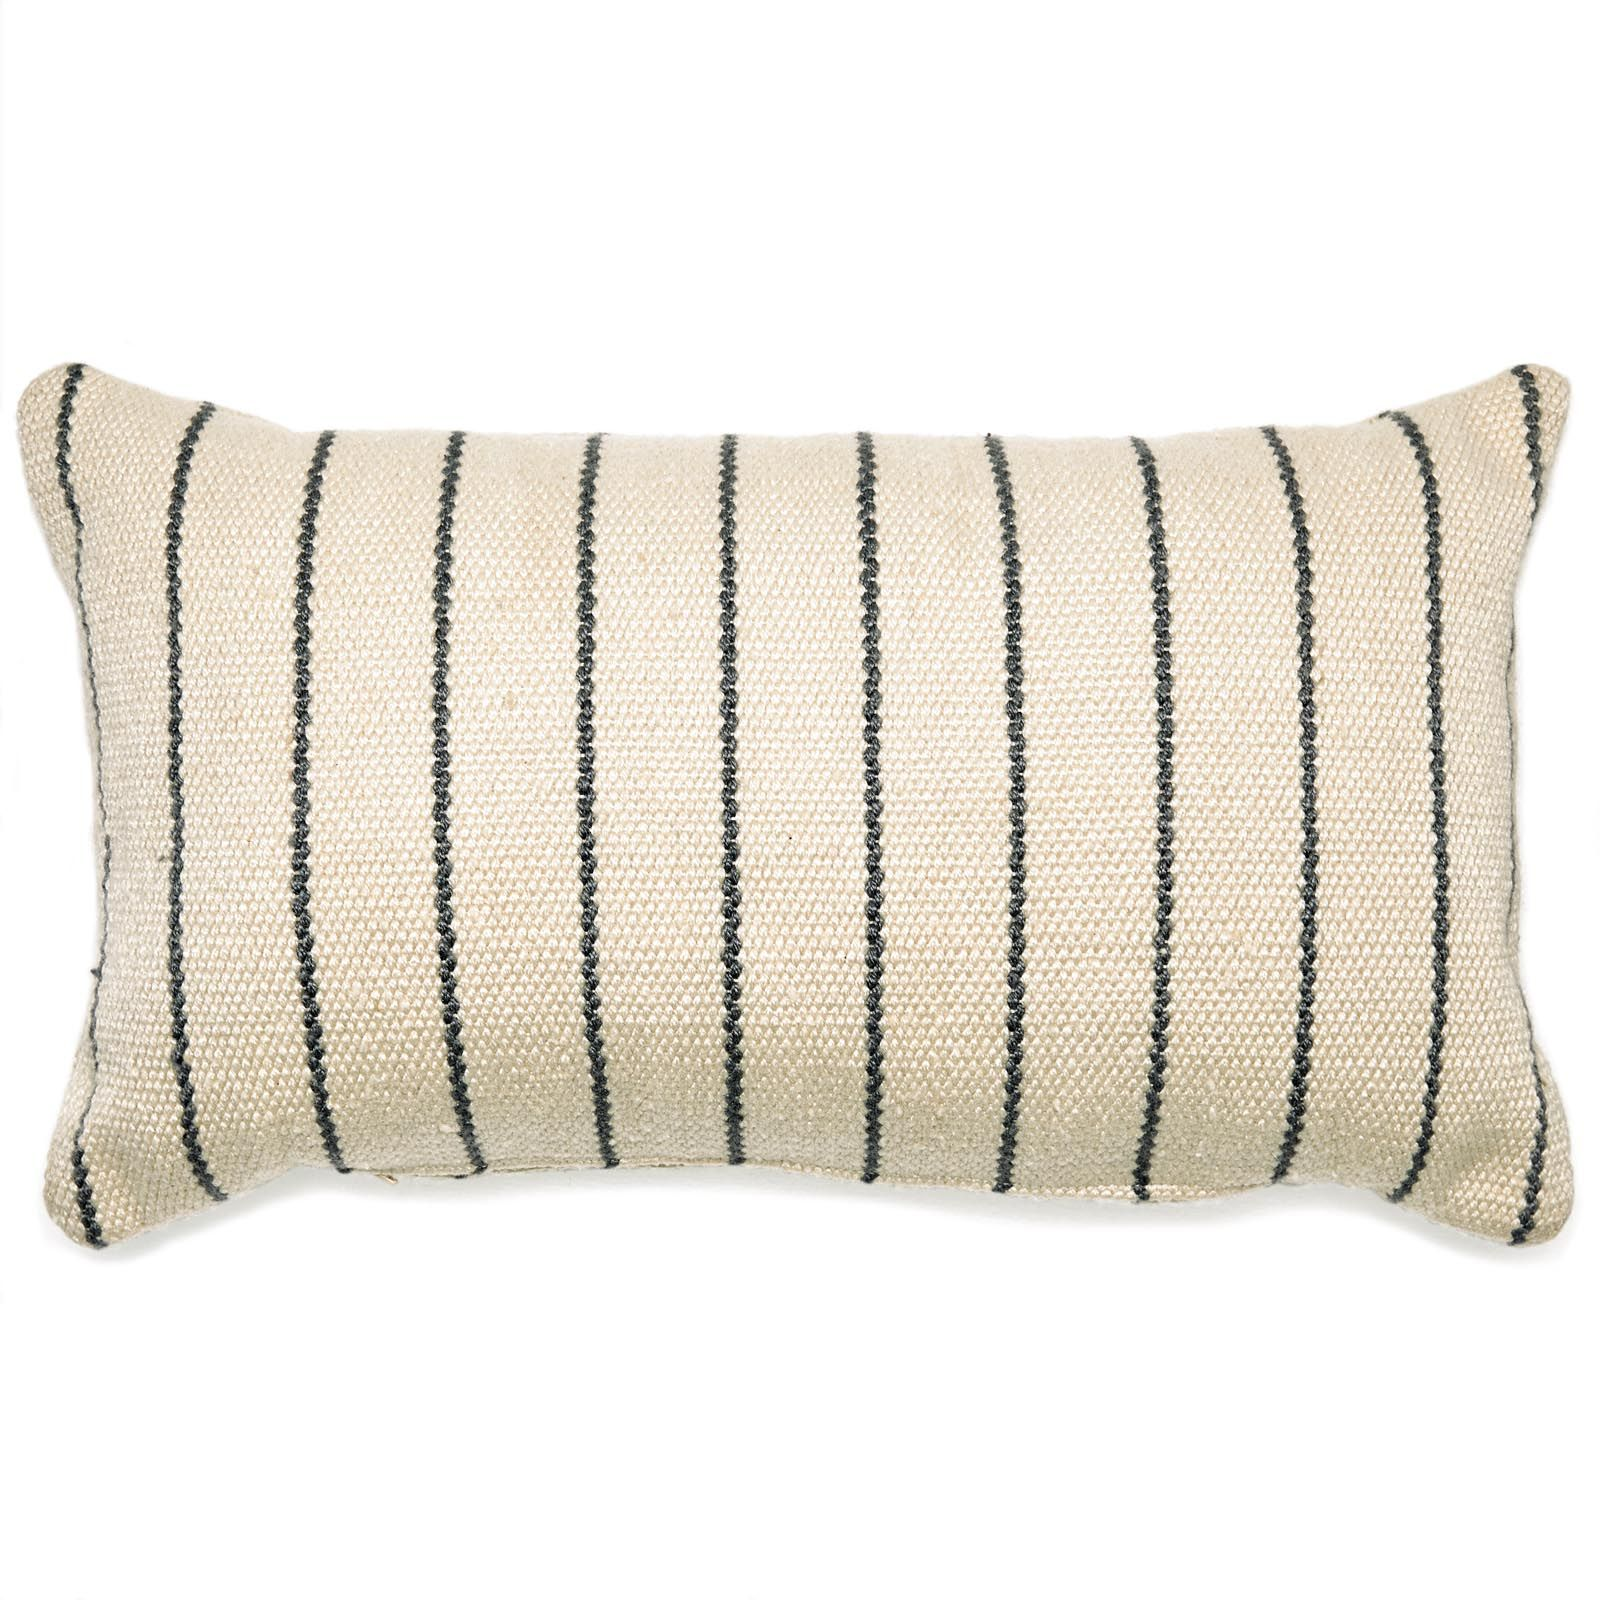 Modrn Stripe Outdoor Throw Pillow 22l X 22w Gray Ivory